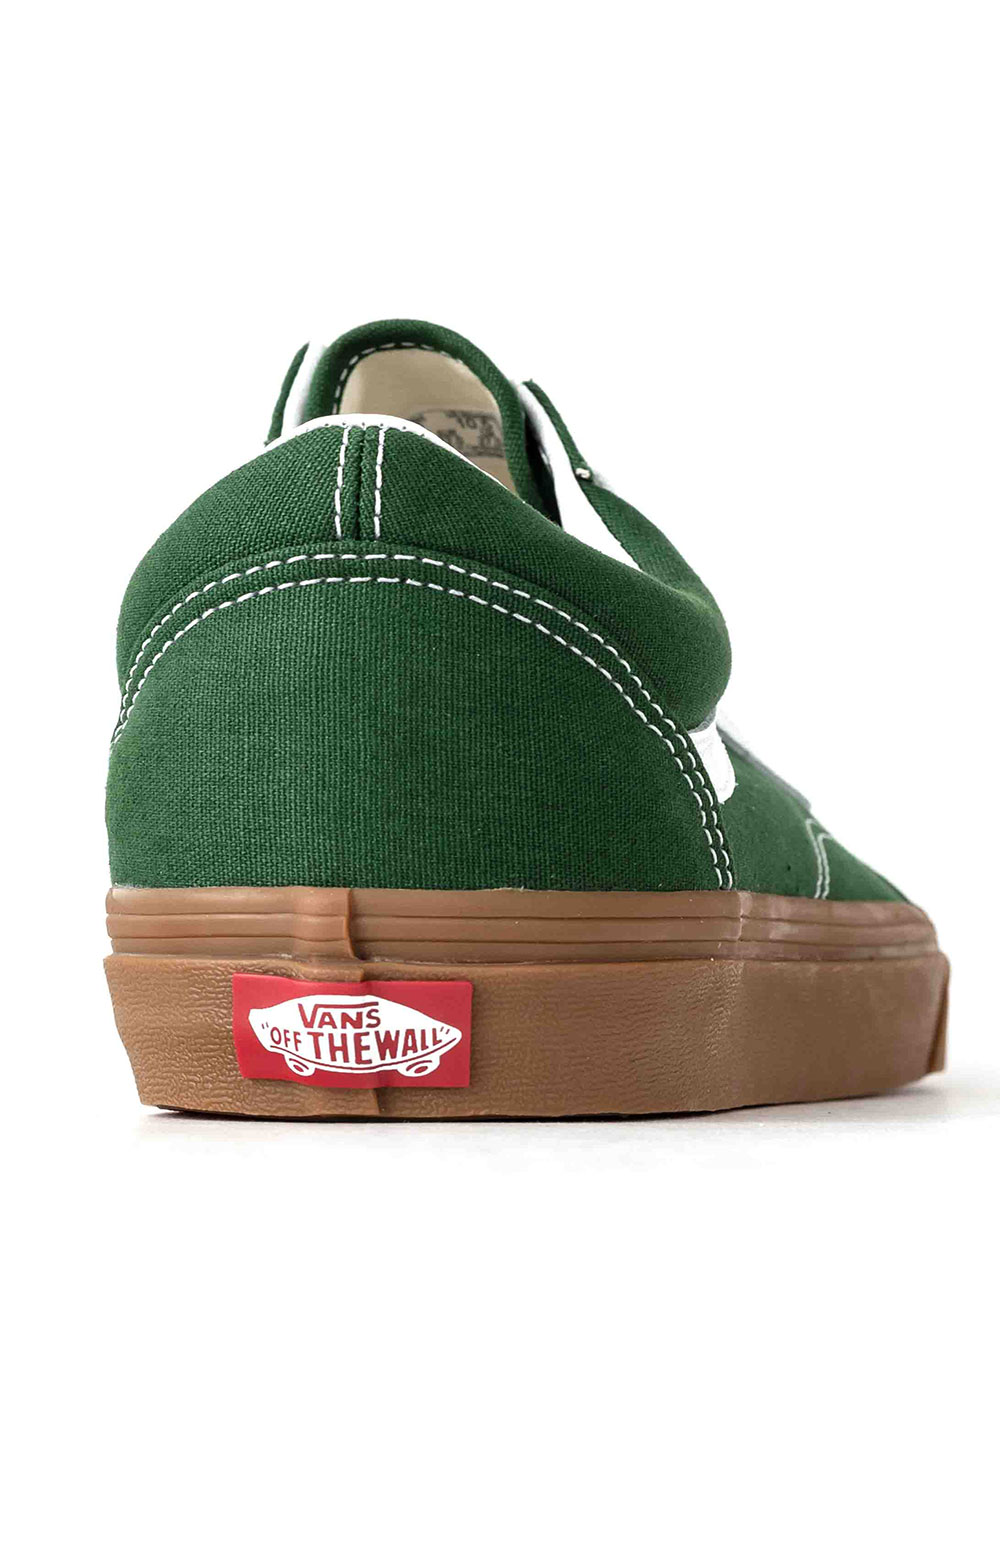 (U3BWYY) Gum Old Skool Shoe - Green Pastures  5